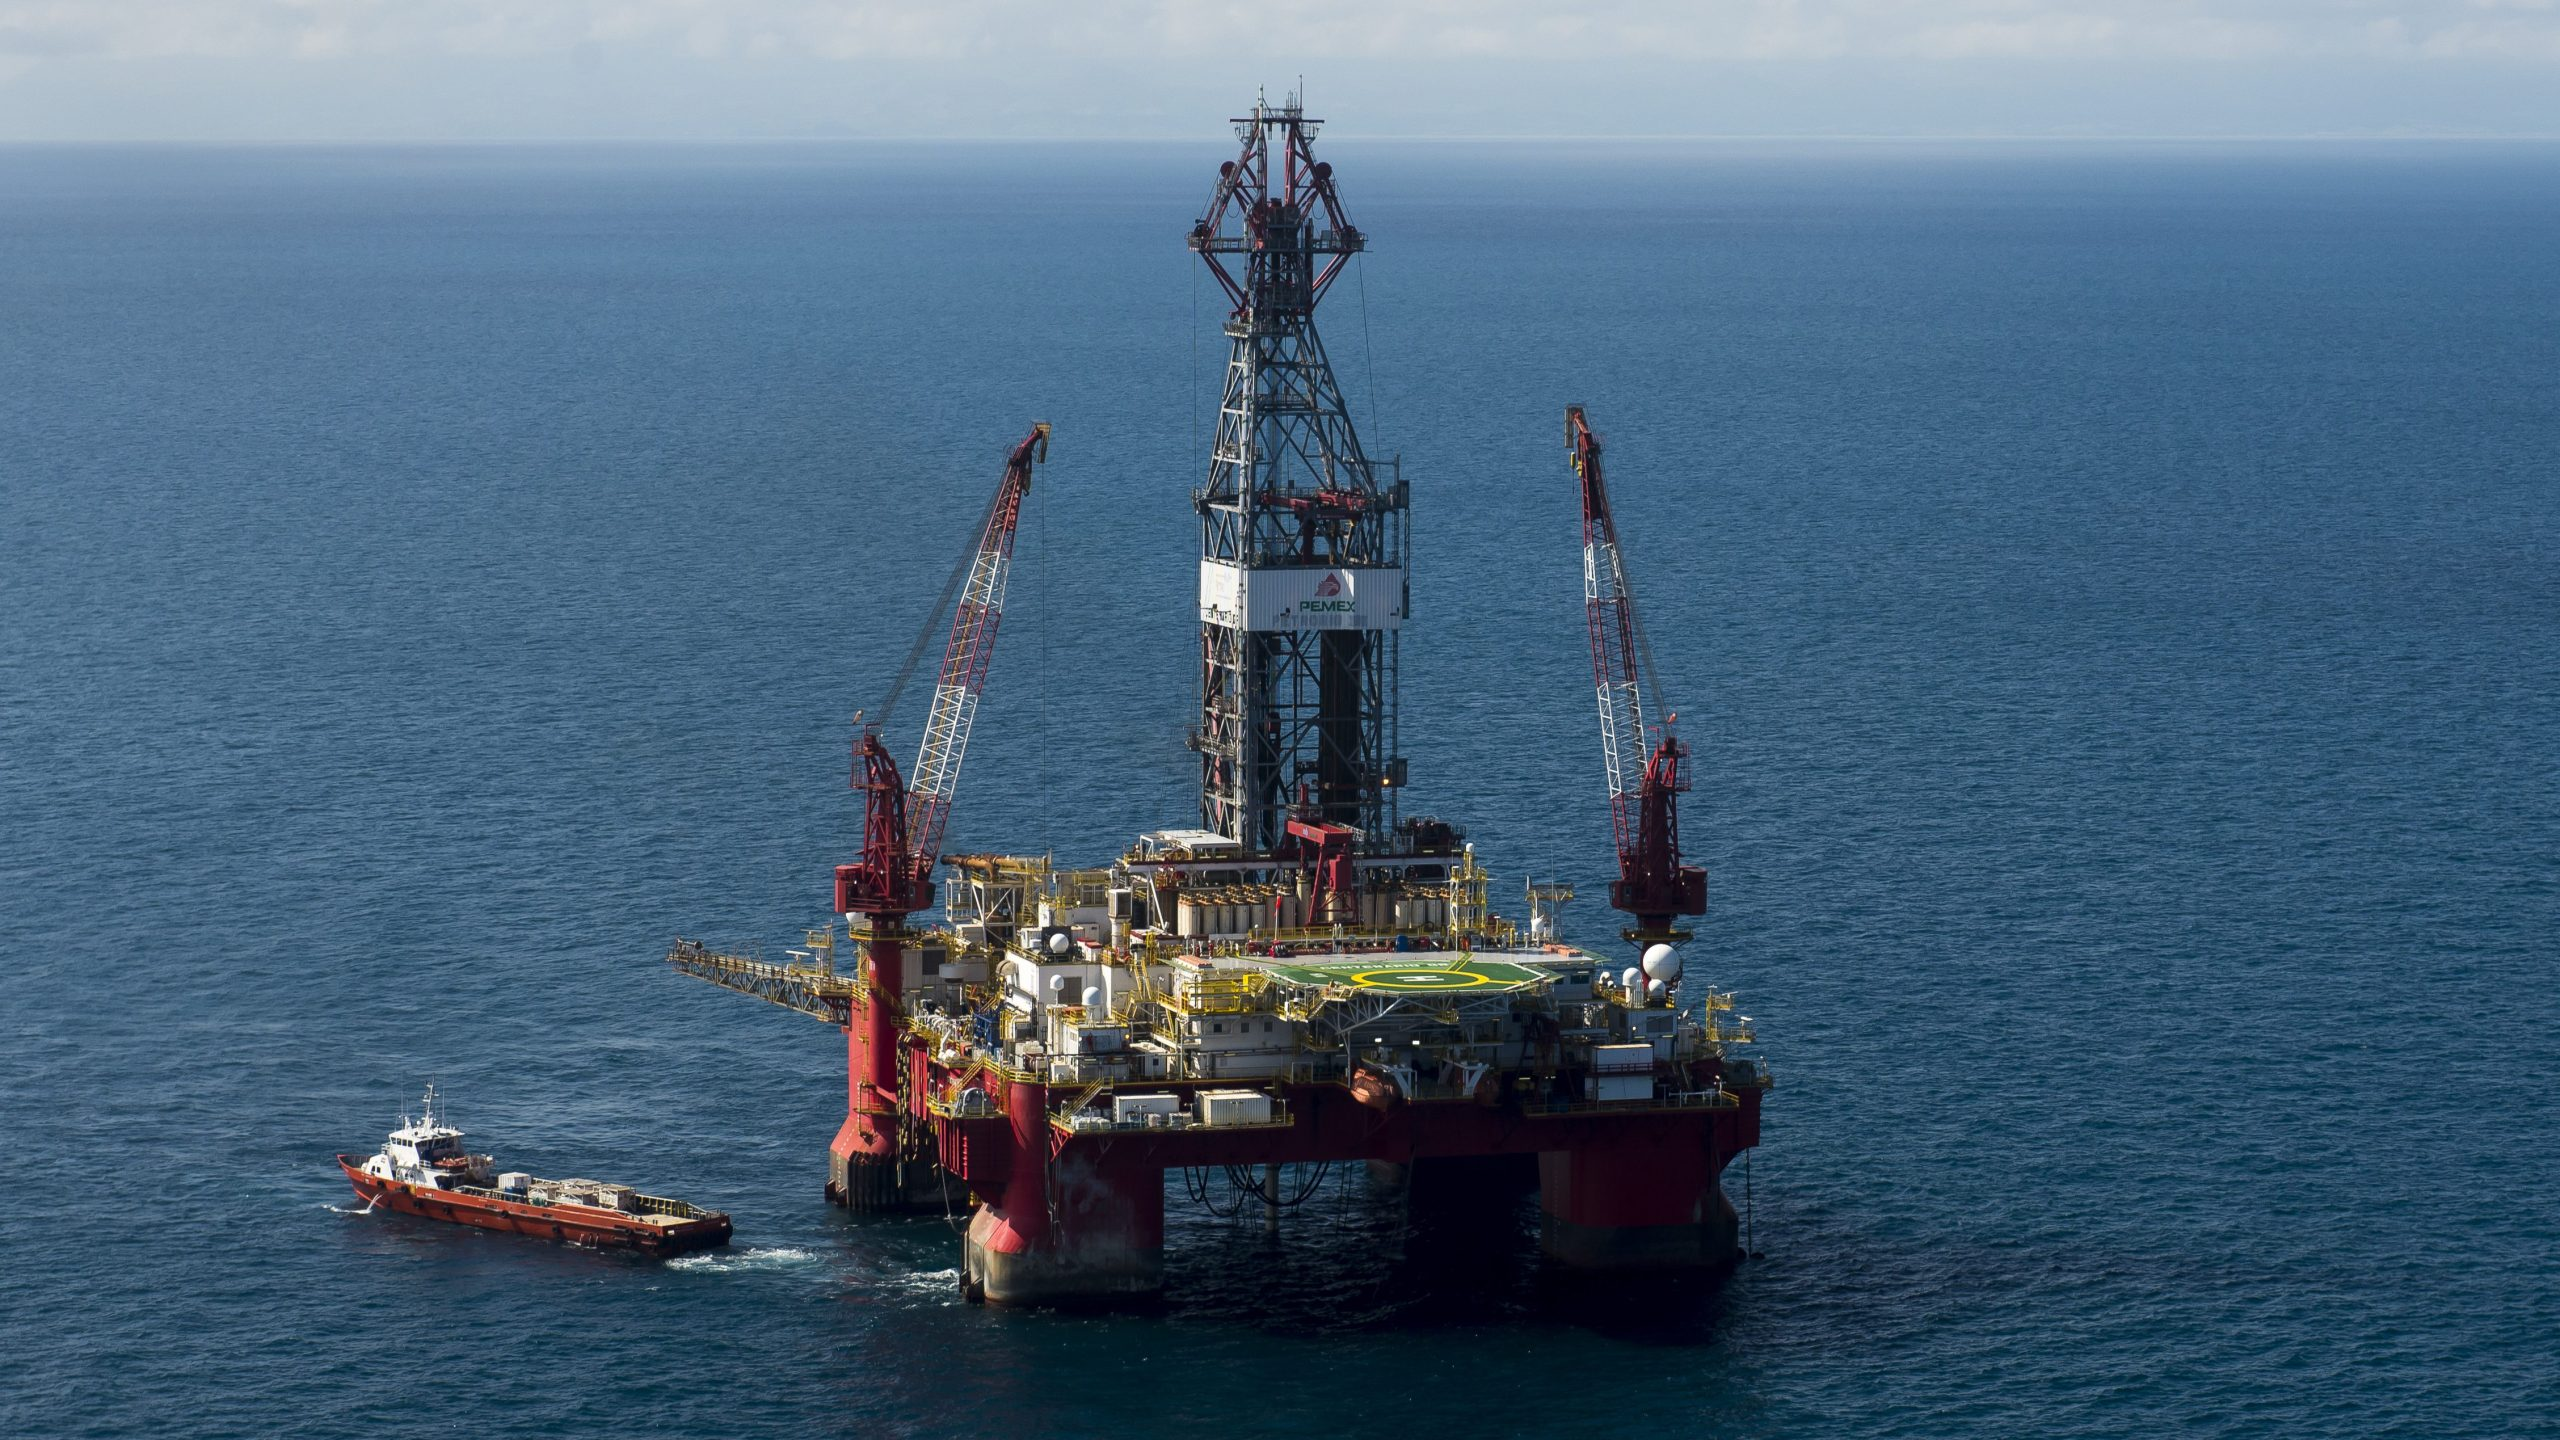 """The Centenario exploration oil rig, operated by Mexican company """"Grupo R"""" and working for Mexico's state-owned oil company Pemex, is seen in the Gulf of Mexico on Aug. 30, 2013. (Omar Torres / AFP / Getty Images)"""